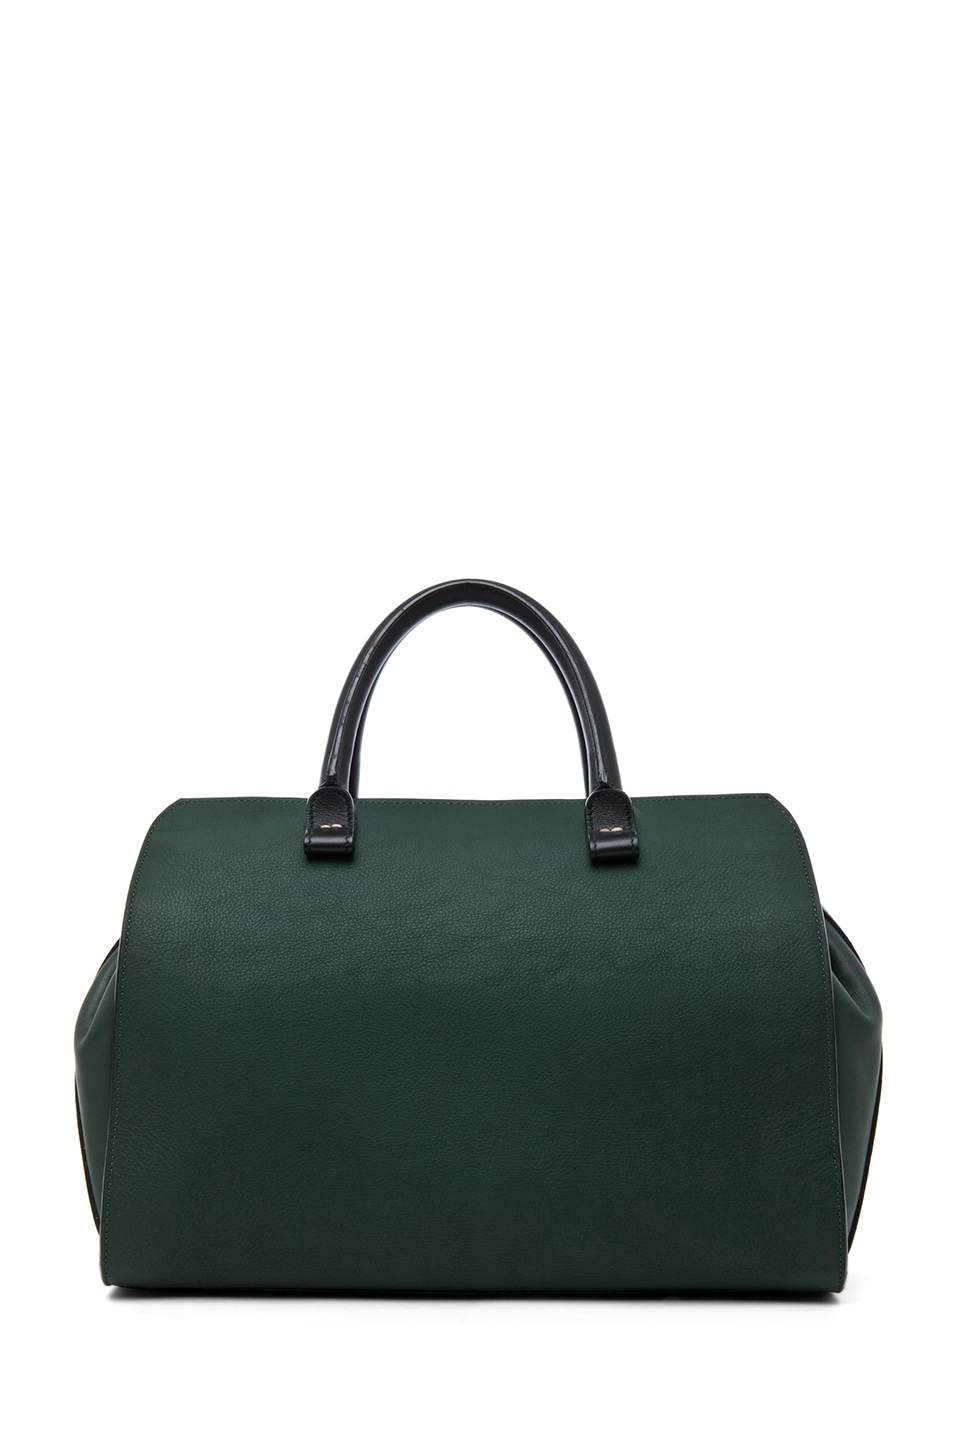 Image 1 of Victoria Beckham The Soft Victoria Bag in Forest Green